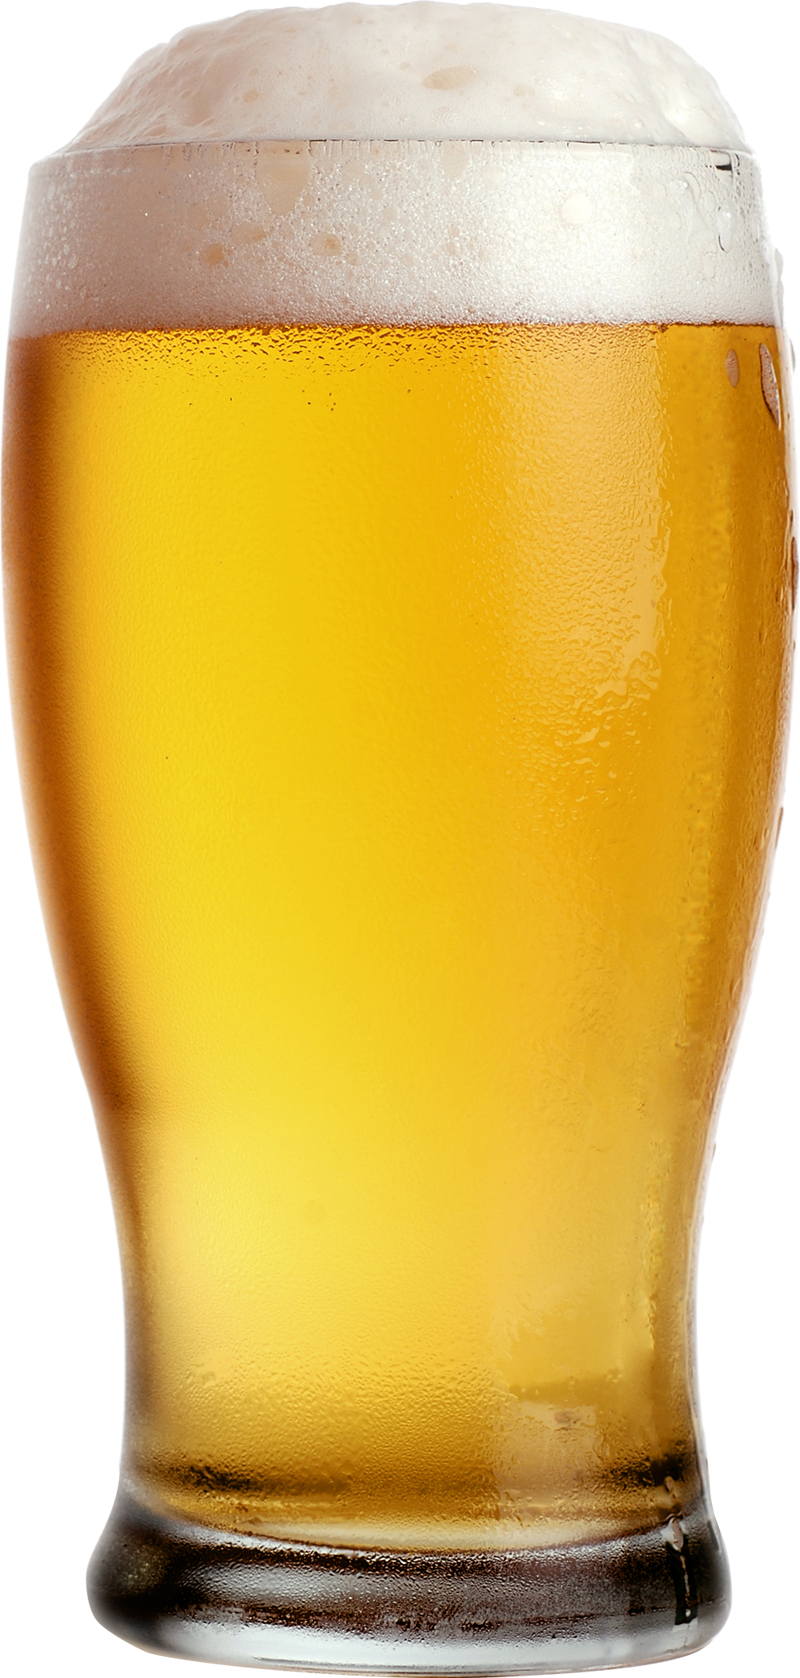 Transparent beer two. Png image purepng free